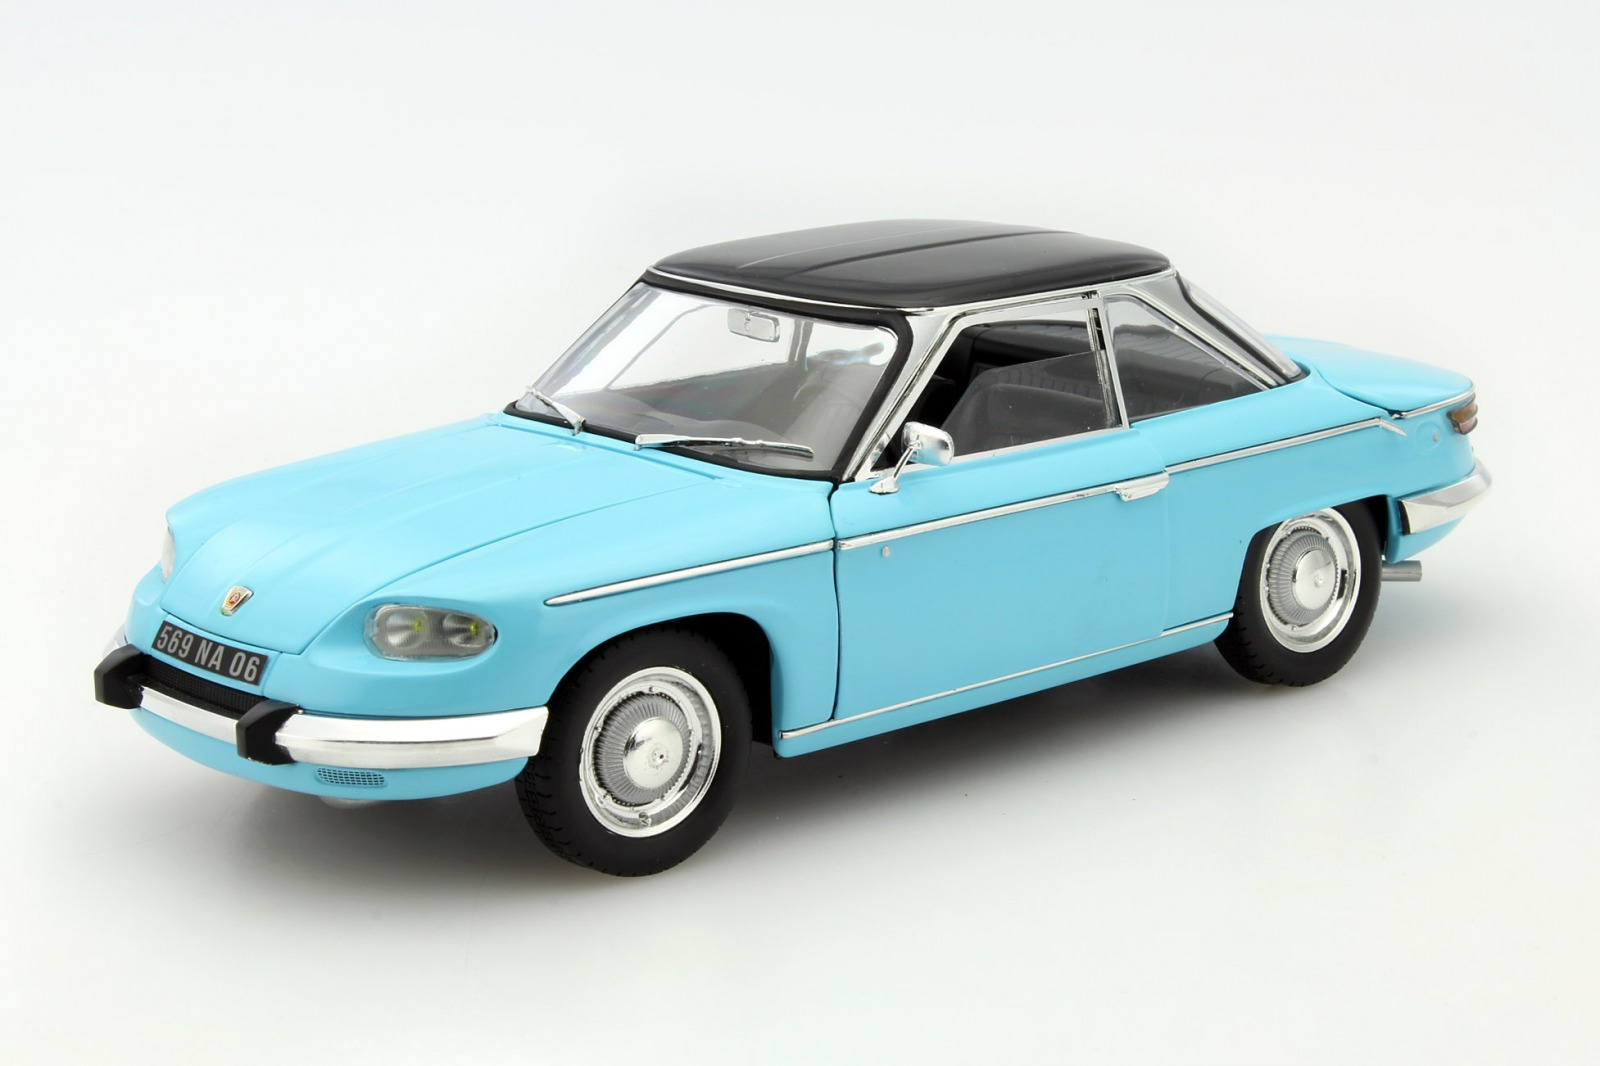 Norev ノレヴ 1:18 1964年モデル パナール 24CT クーペ ブルーNOREV - 1/18 - PANHARD - 24CT COUPE 1964